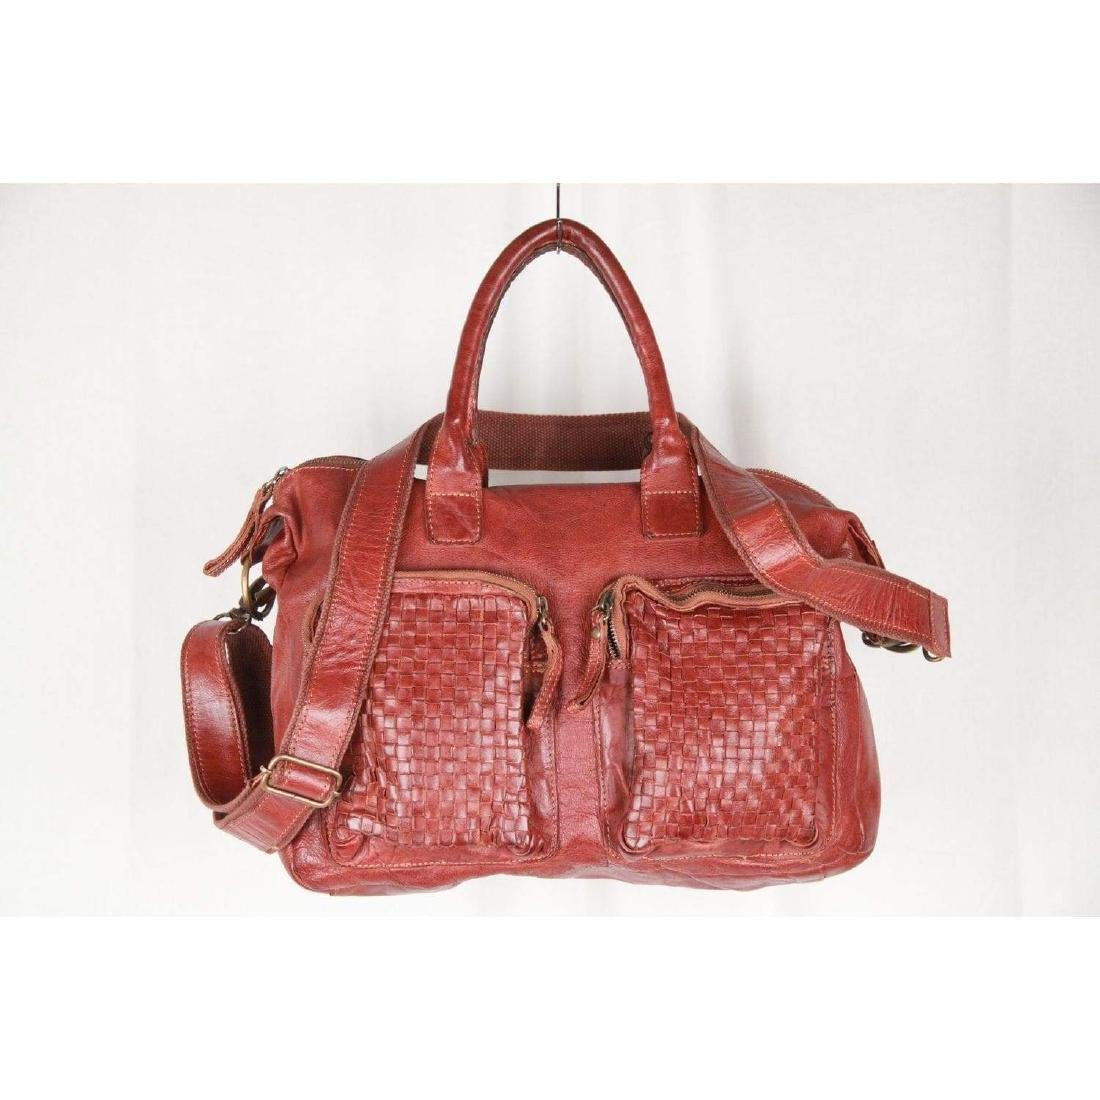 COWBOYSBAG Brown Leather THE BAG Satchel with WOVEN - 2